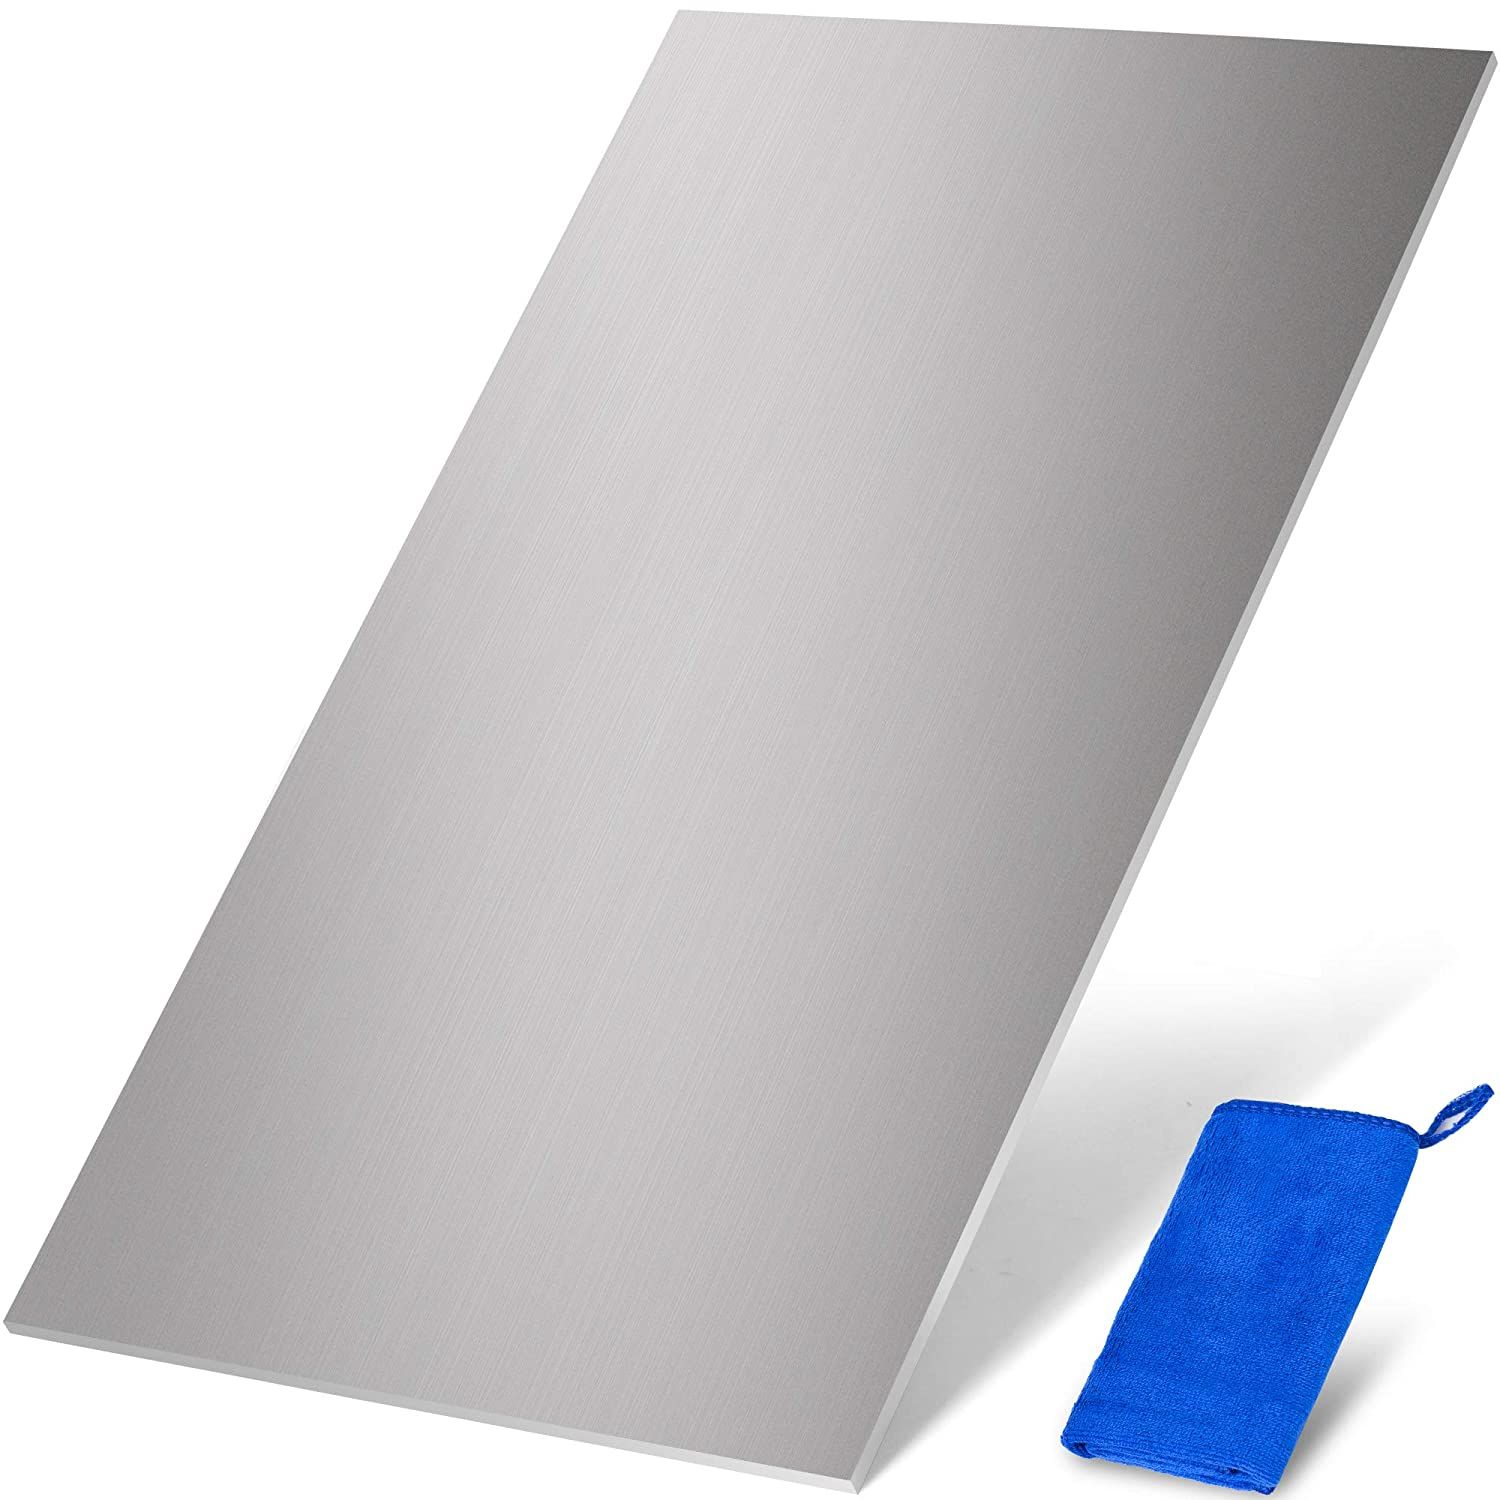 6061 Aluminium Metal Sheet - 12 x 6 x ⅛ Inch - Flat Plain Plate Panel Finely Polished and Deburred - Includes Microfiber Towel